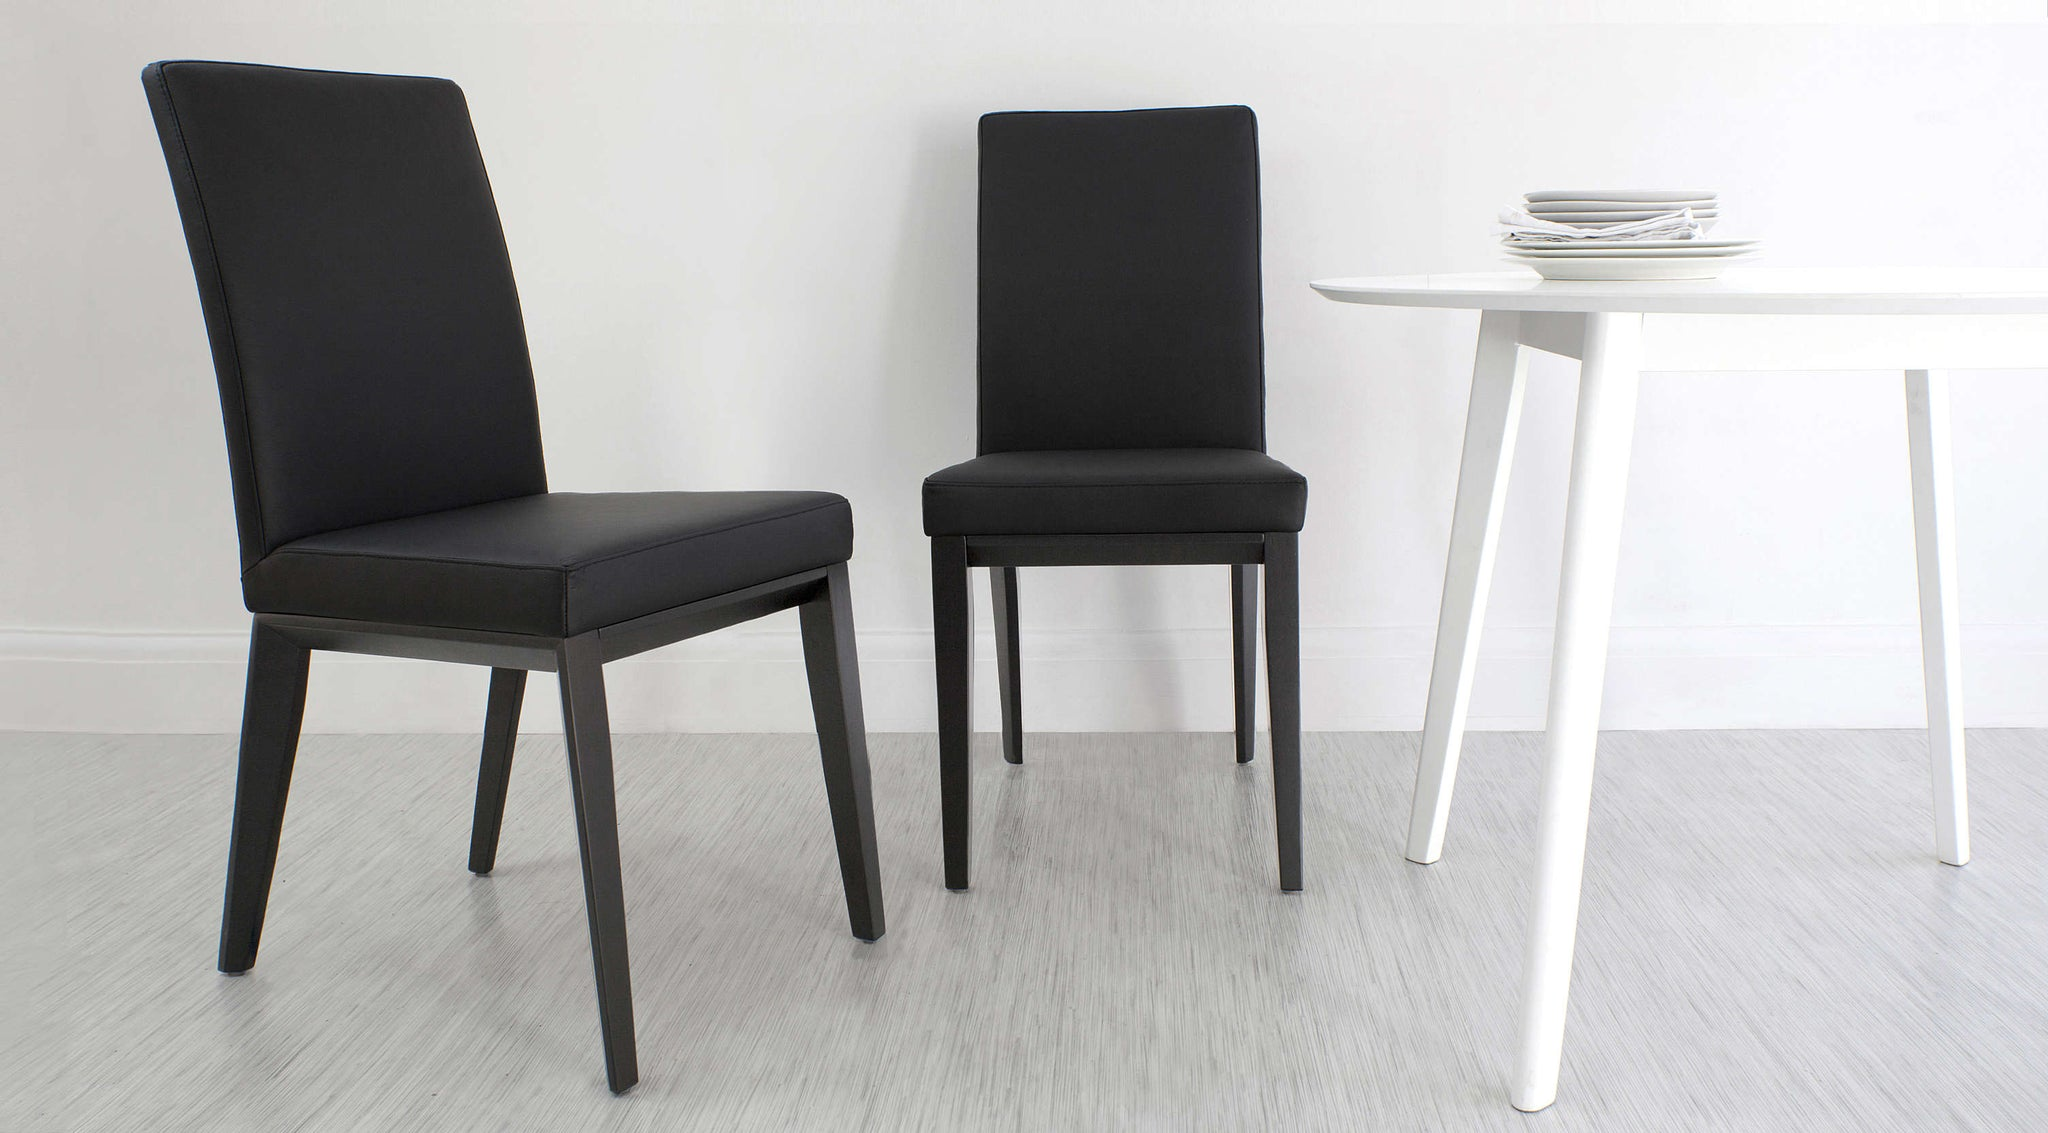 Black Real Leather Modern Dining Chairs